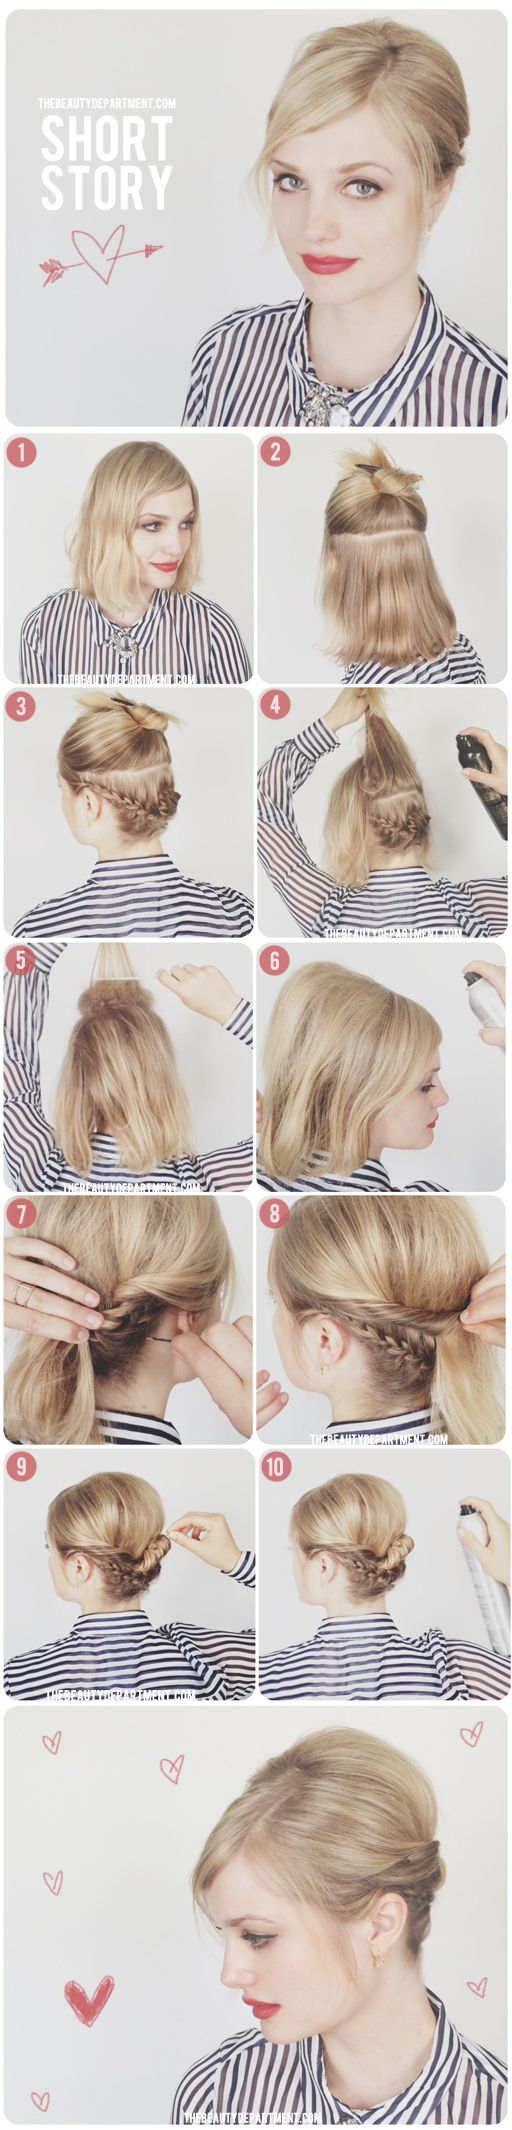 HAIR WEEK: here's a fun, fancy way secure short hair if you want to put it all up! xo